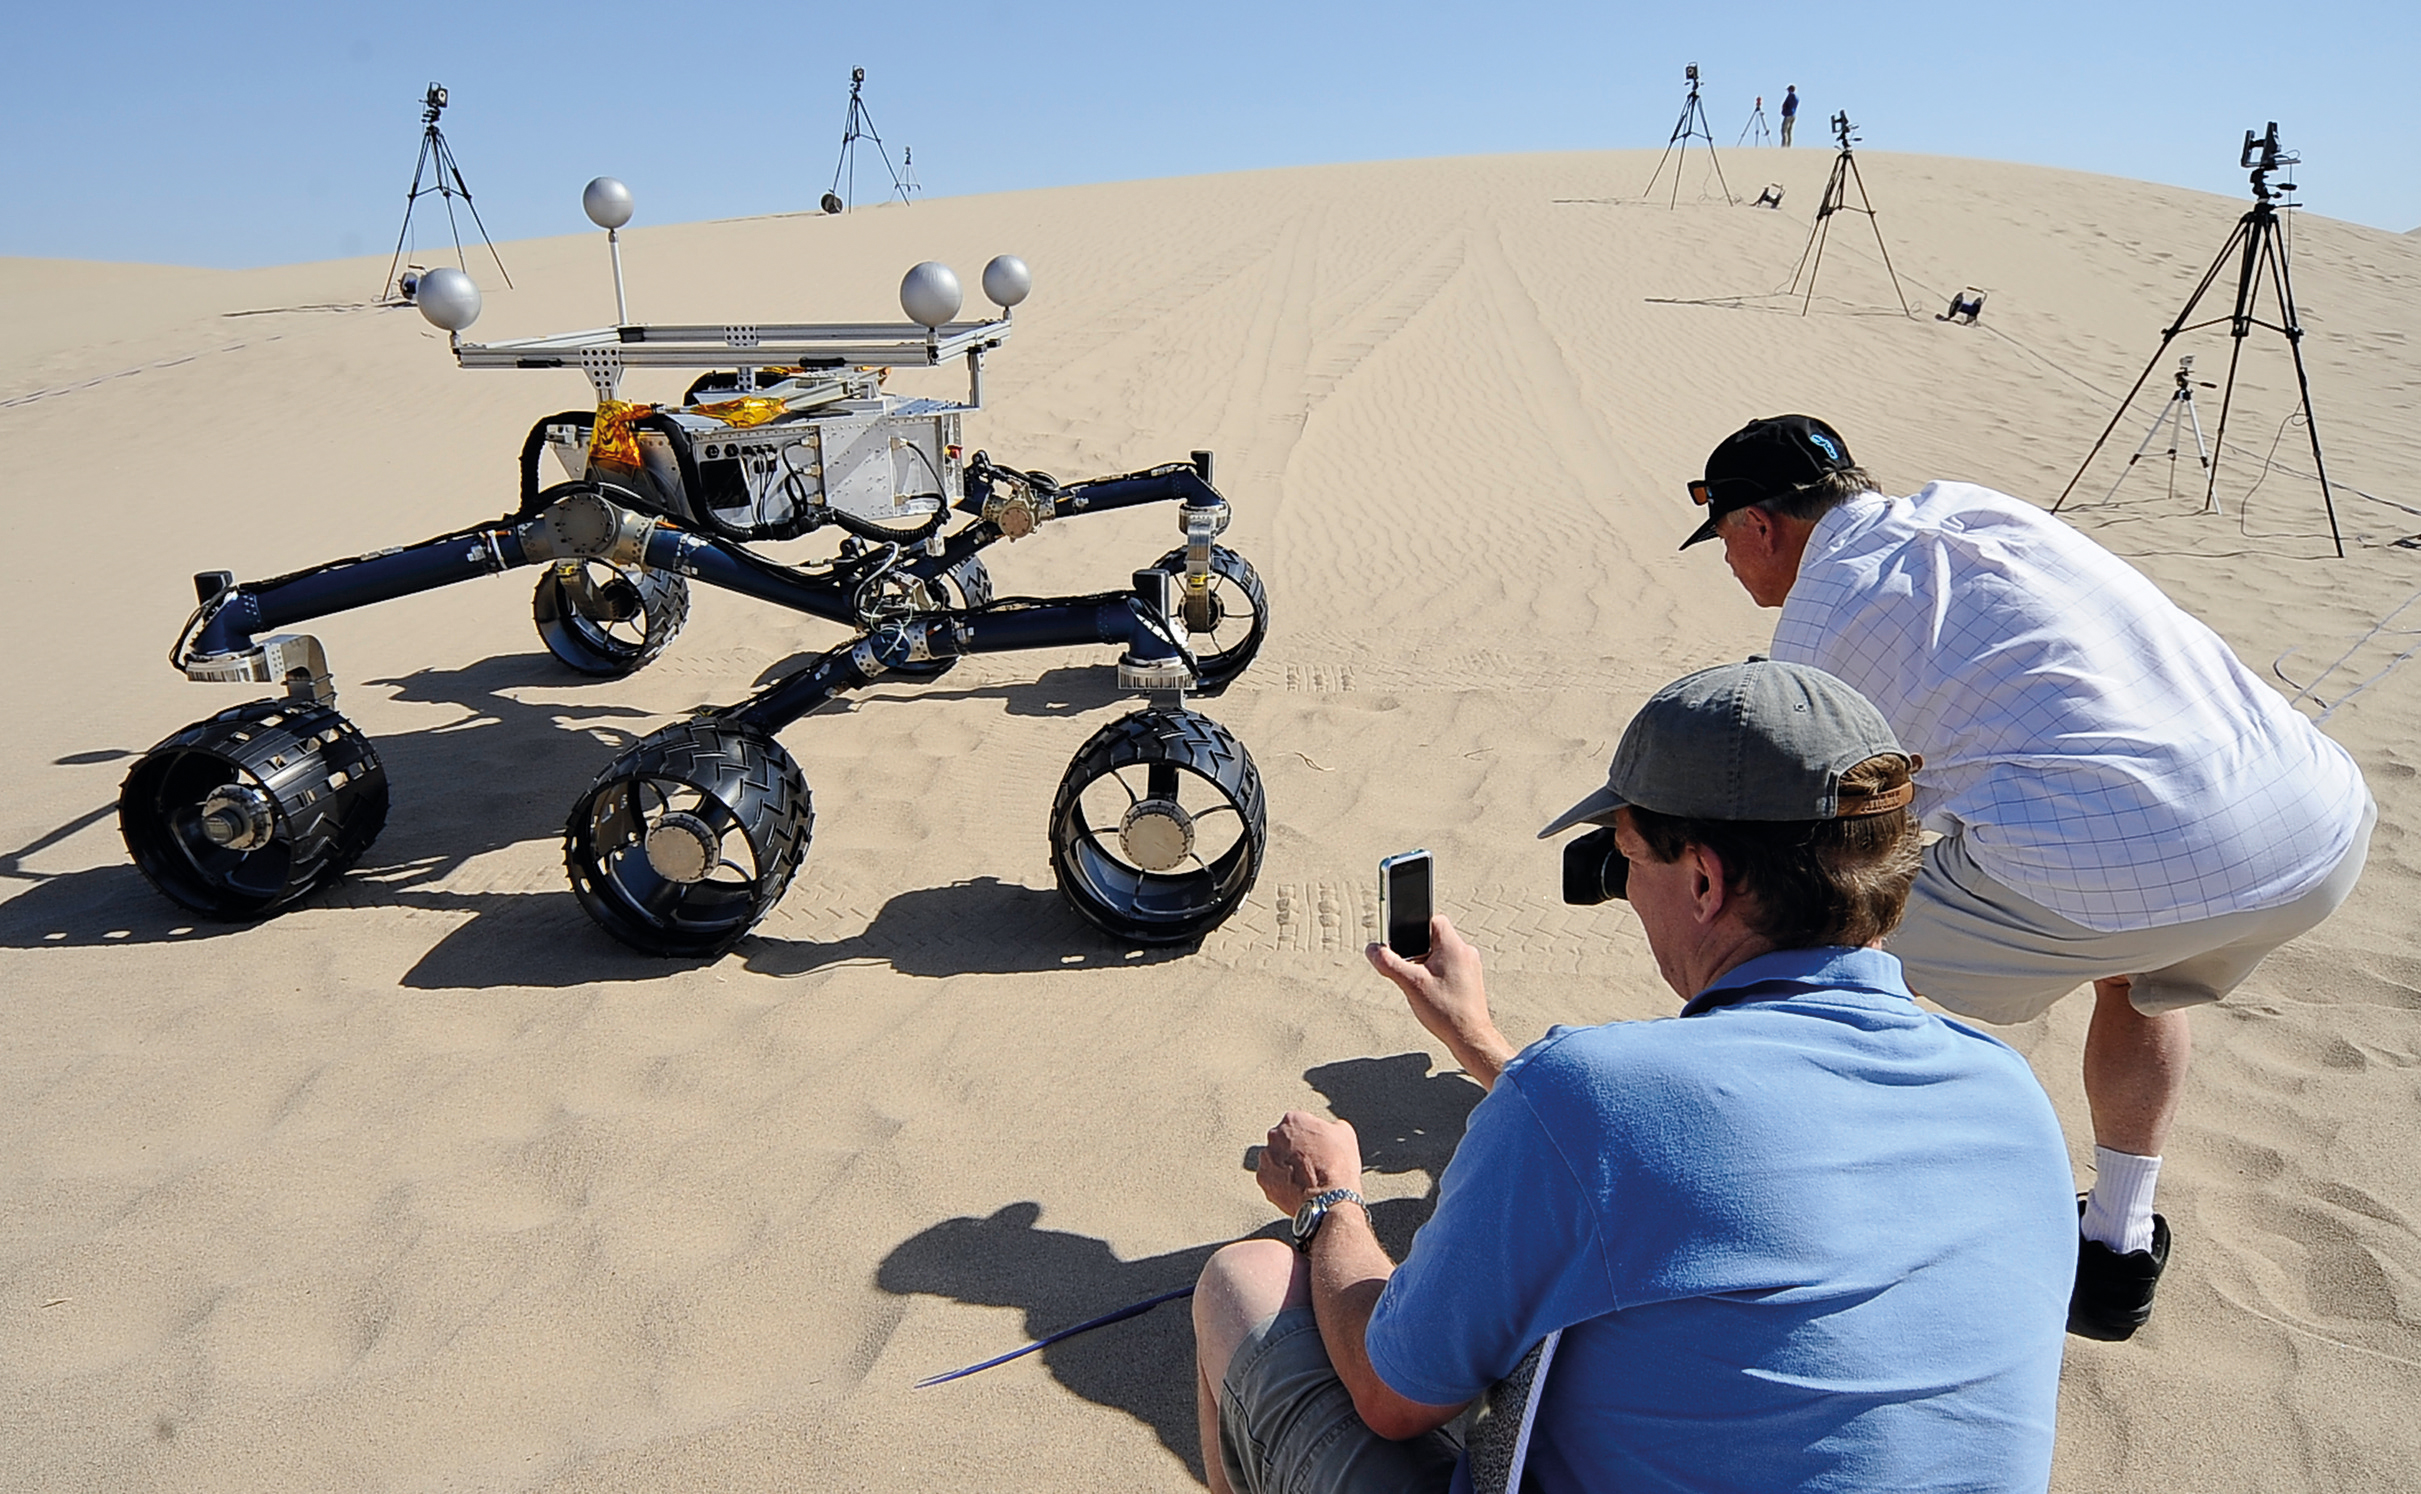 """10 May 2012, Baker, California, USA ---  Members of the Mars Science Laboratory/ Curiosity team including rover drivers and scientists tests out  an engineering model of its next generation Mars rover dubbed """"Curiosity"""" in the Dumont Dunes near Baker, California May 10, 2012.  --- Image by © Gene Blevins/ /Corbis"""